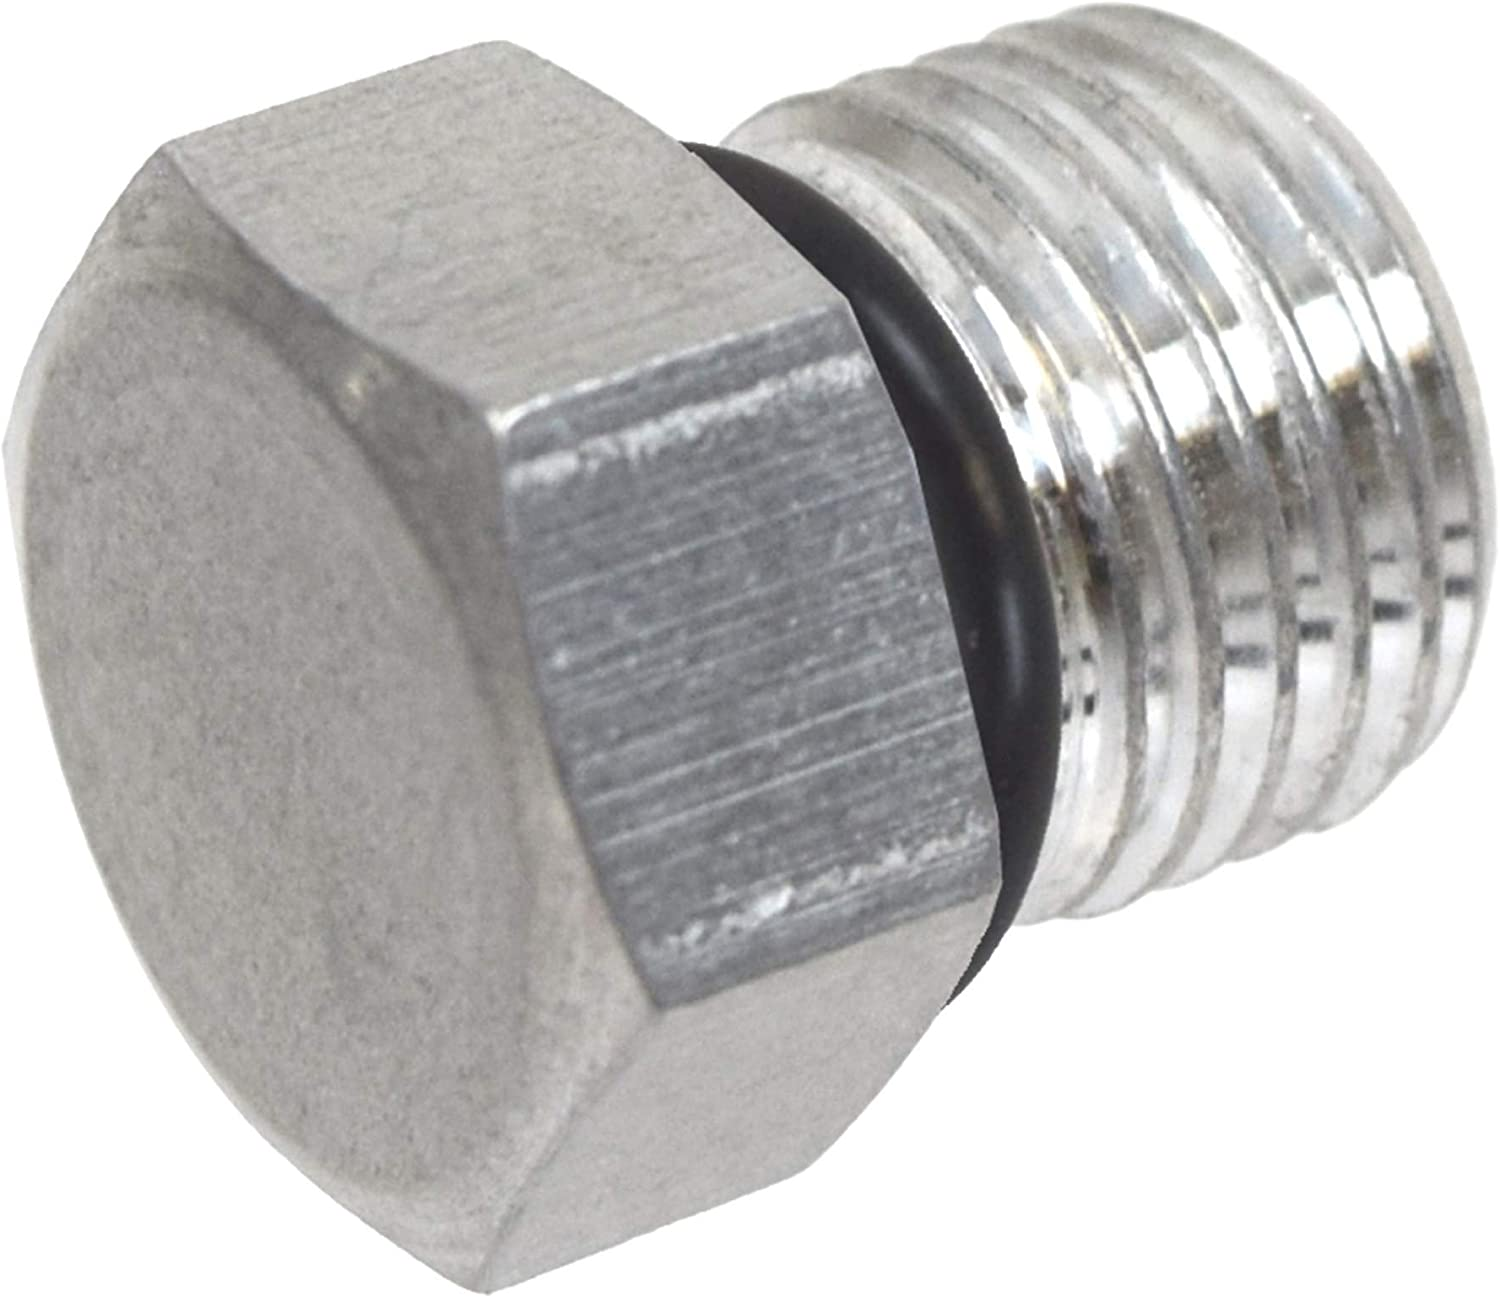 6AN ORB Straight Thread Plug Male Nut Cap Fitting Aluminum AN814-06A ICT Billet